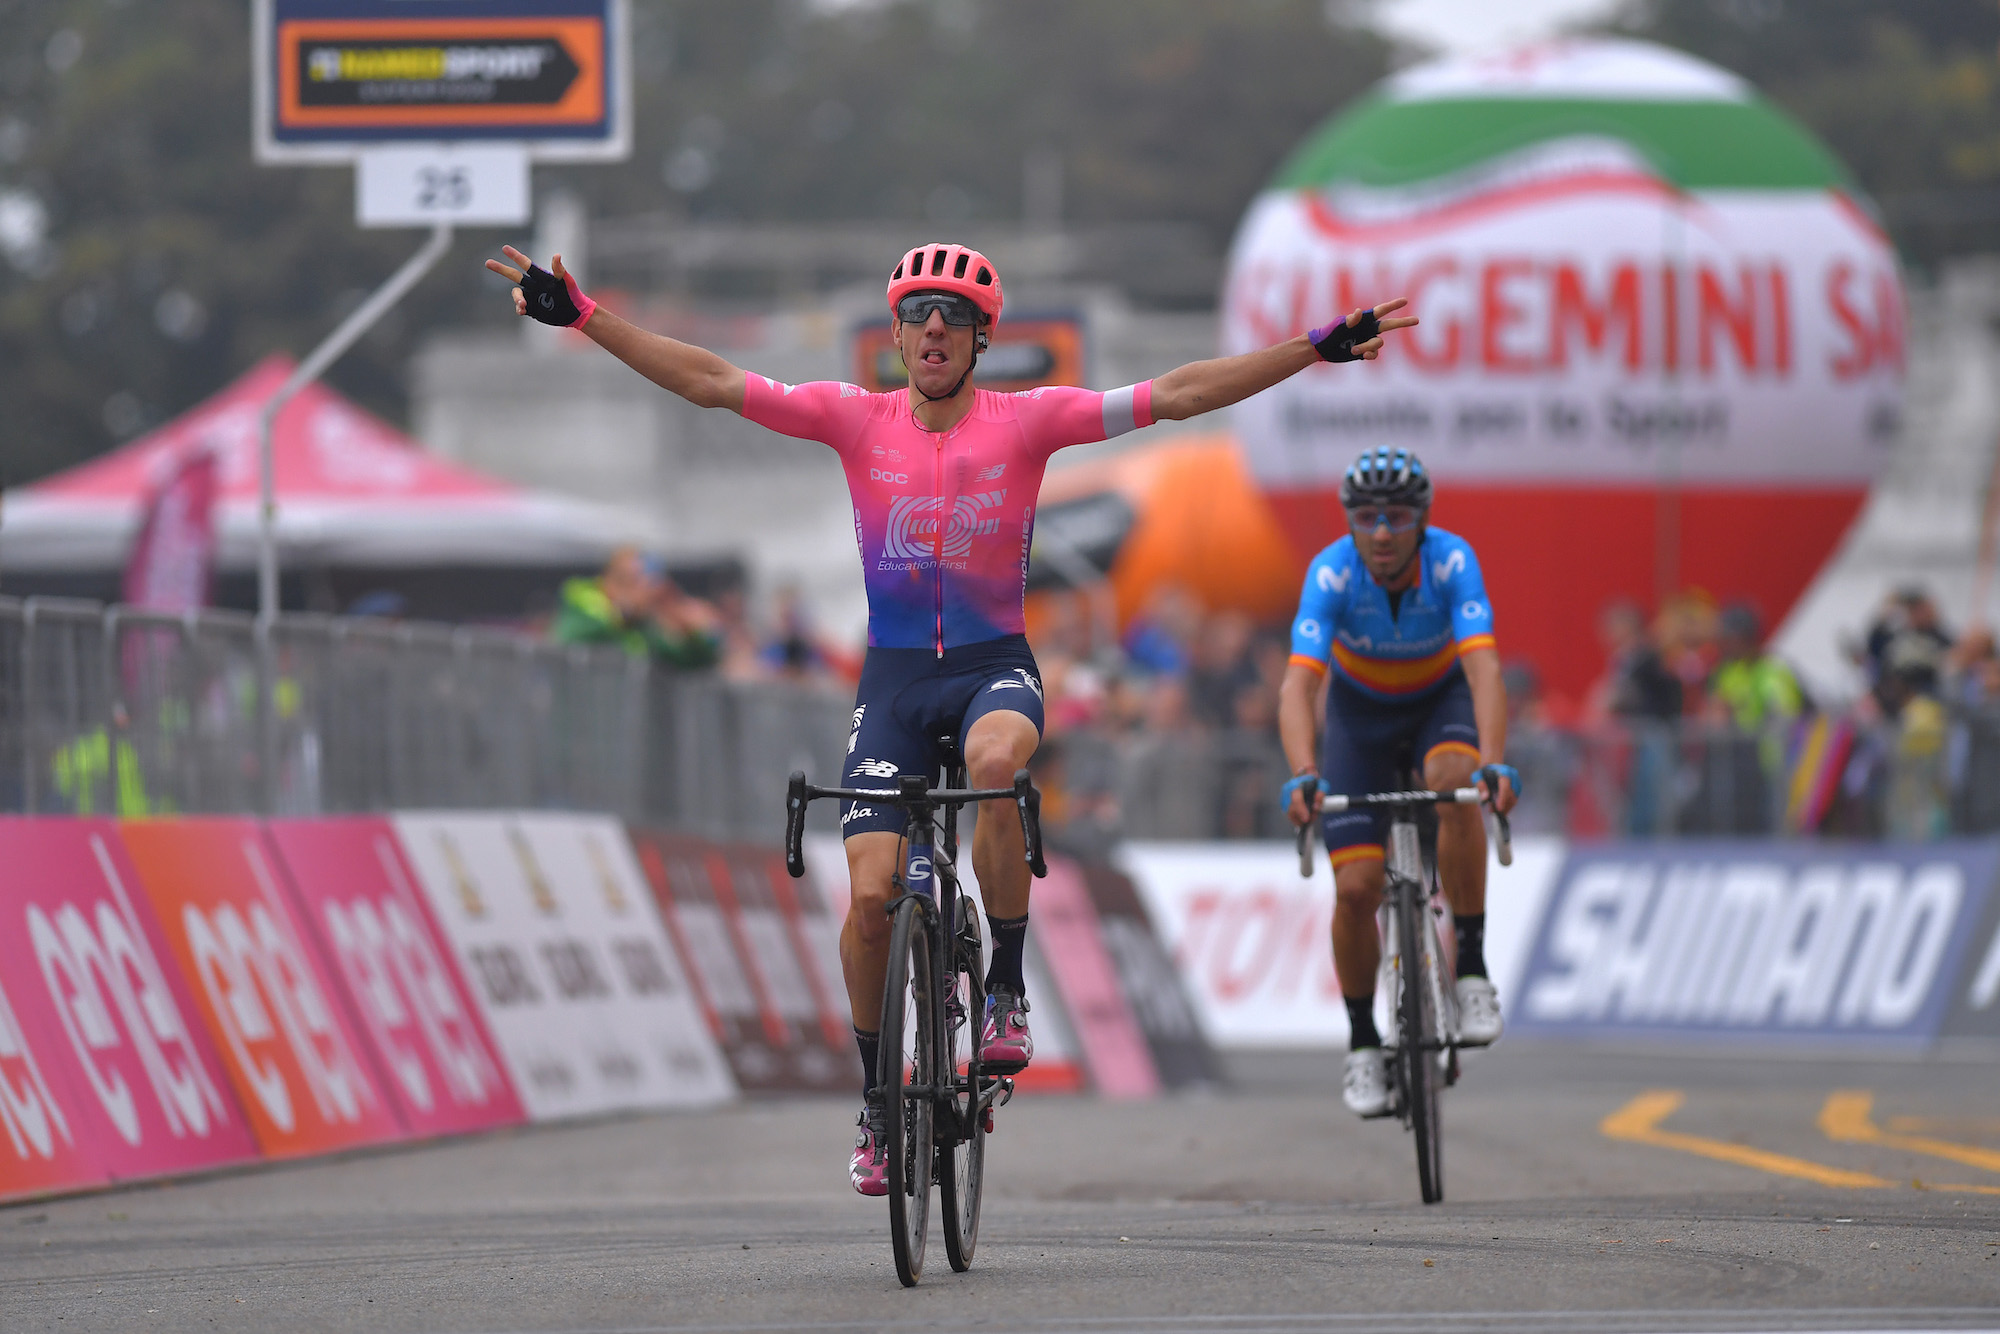 Relentless Michael Woods finally powers away from rivals to score Milano-Torino 2019 victory